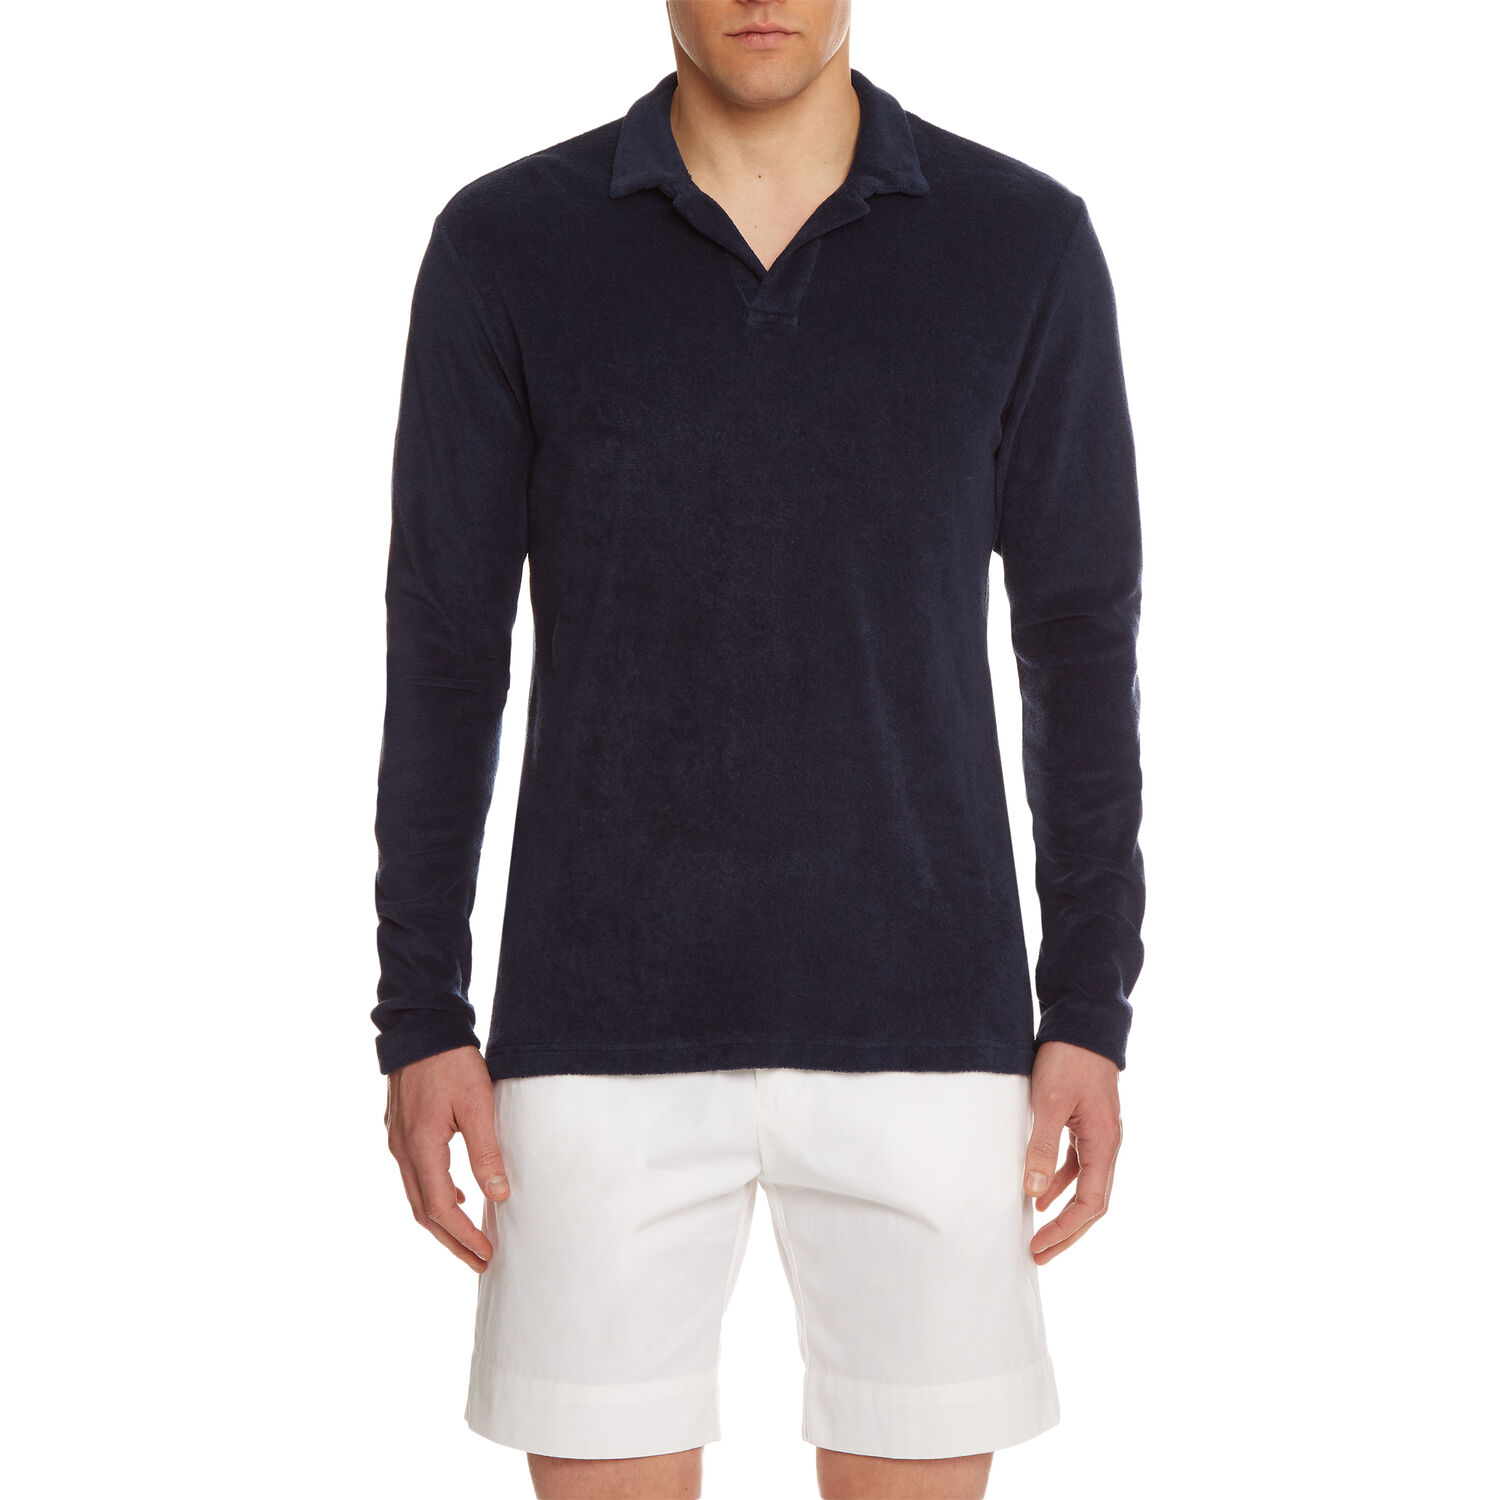 Orlebar Brown TERRY TOWELLING NAVY